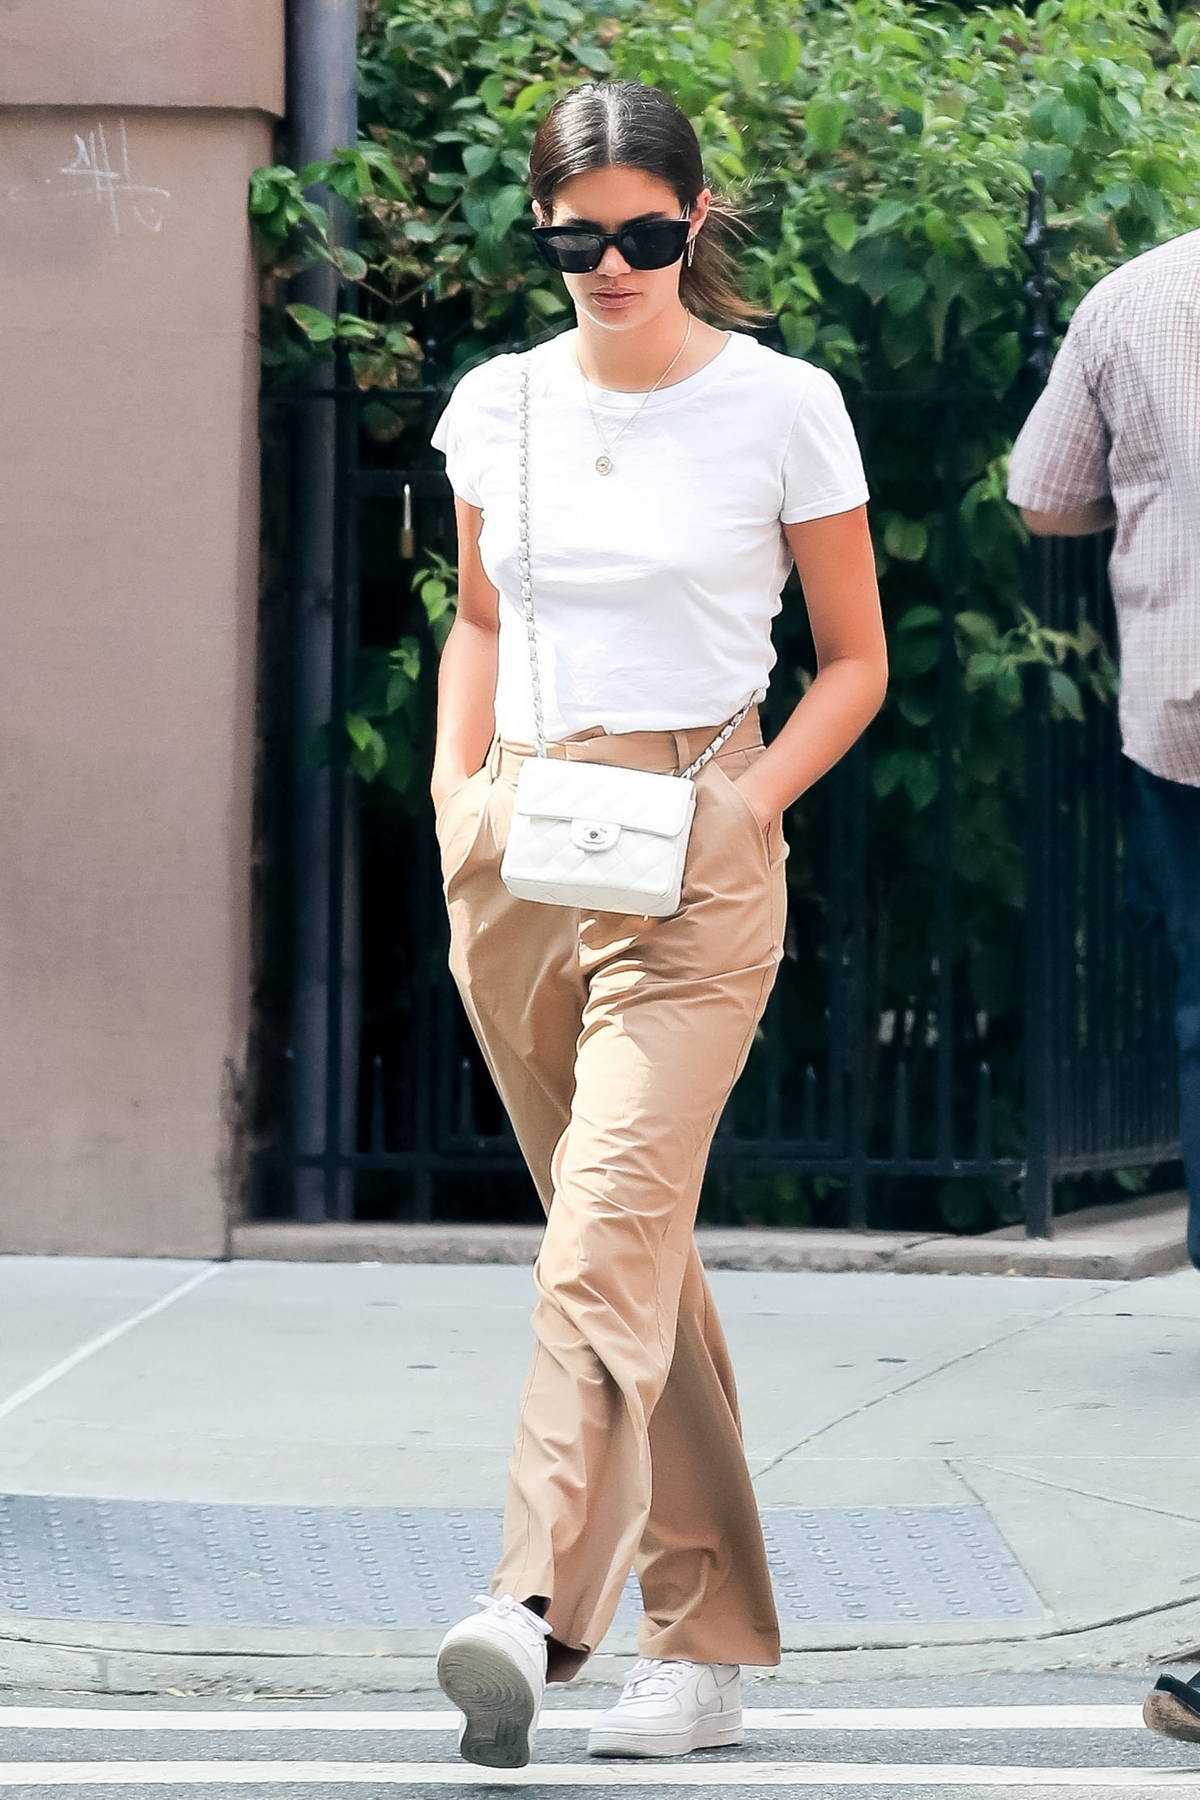 Sara Sampaio keeps it casual for a morning stroll in SoHo, New York City